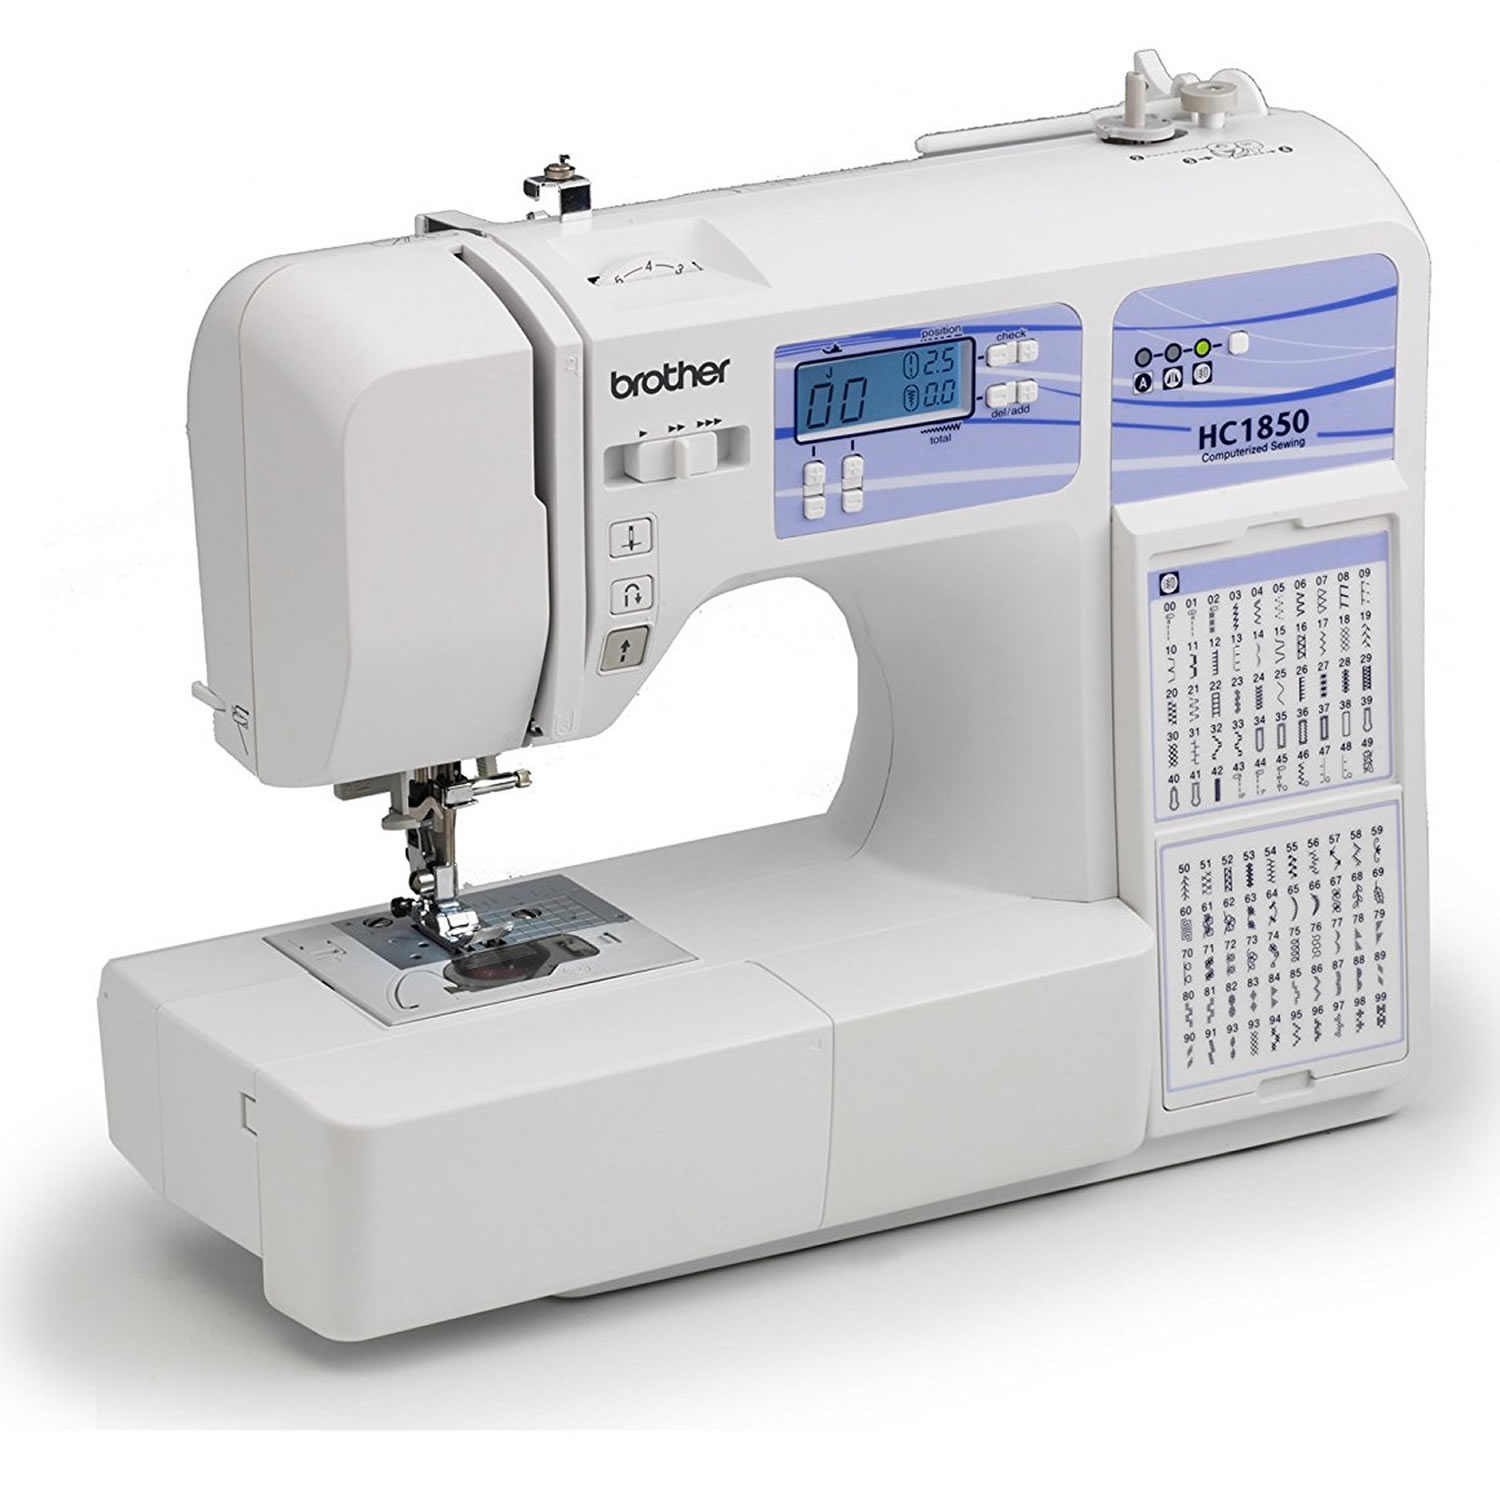 Brother HC1850 – Find Sewing Machine